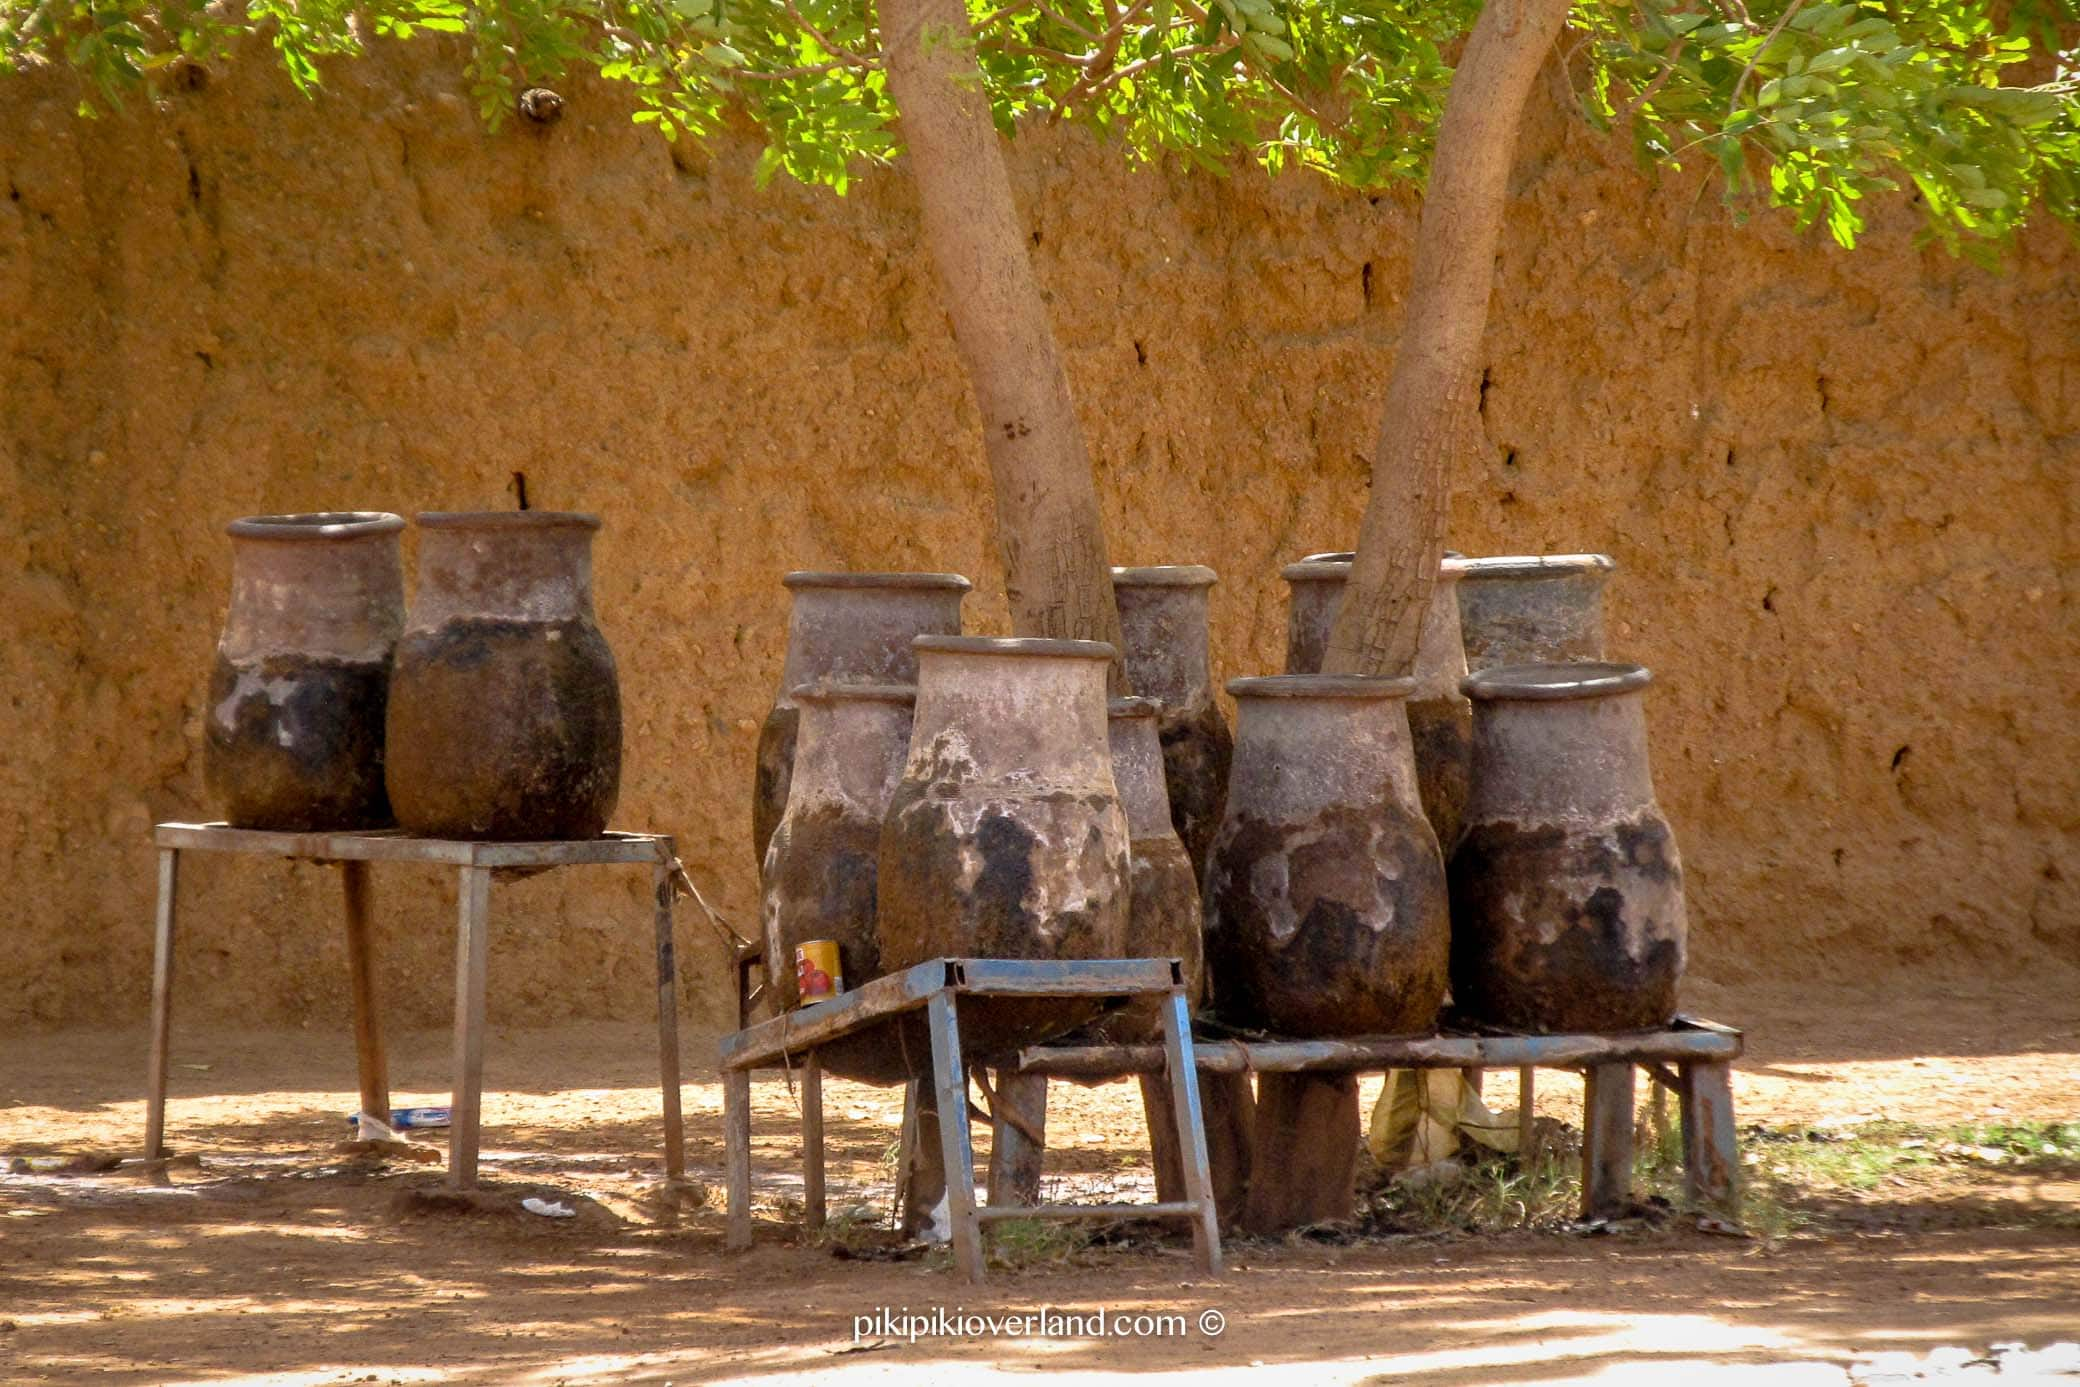 water Jar or the pot, known in the Sudan as Alzeer